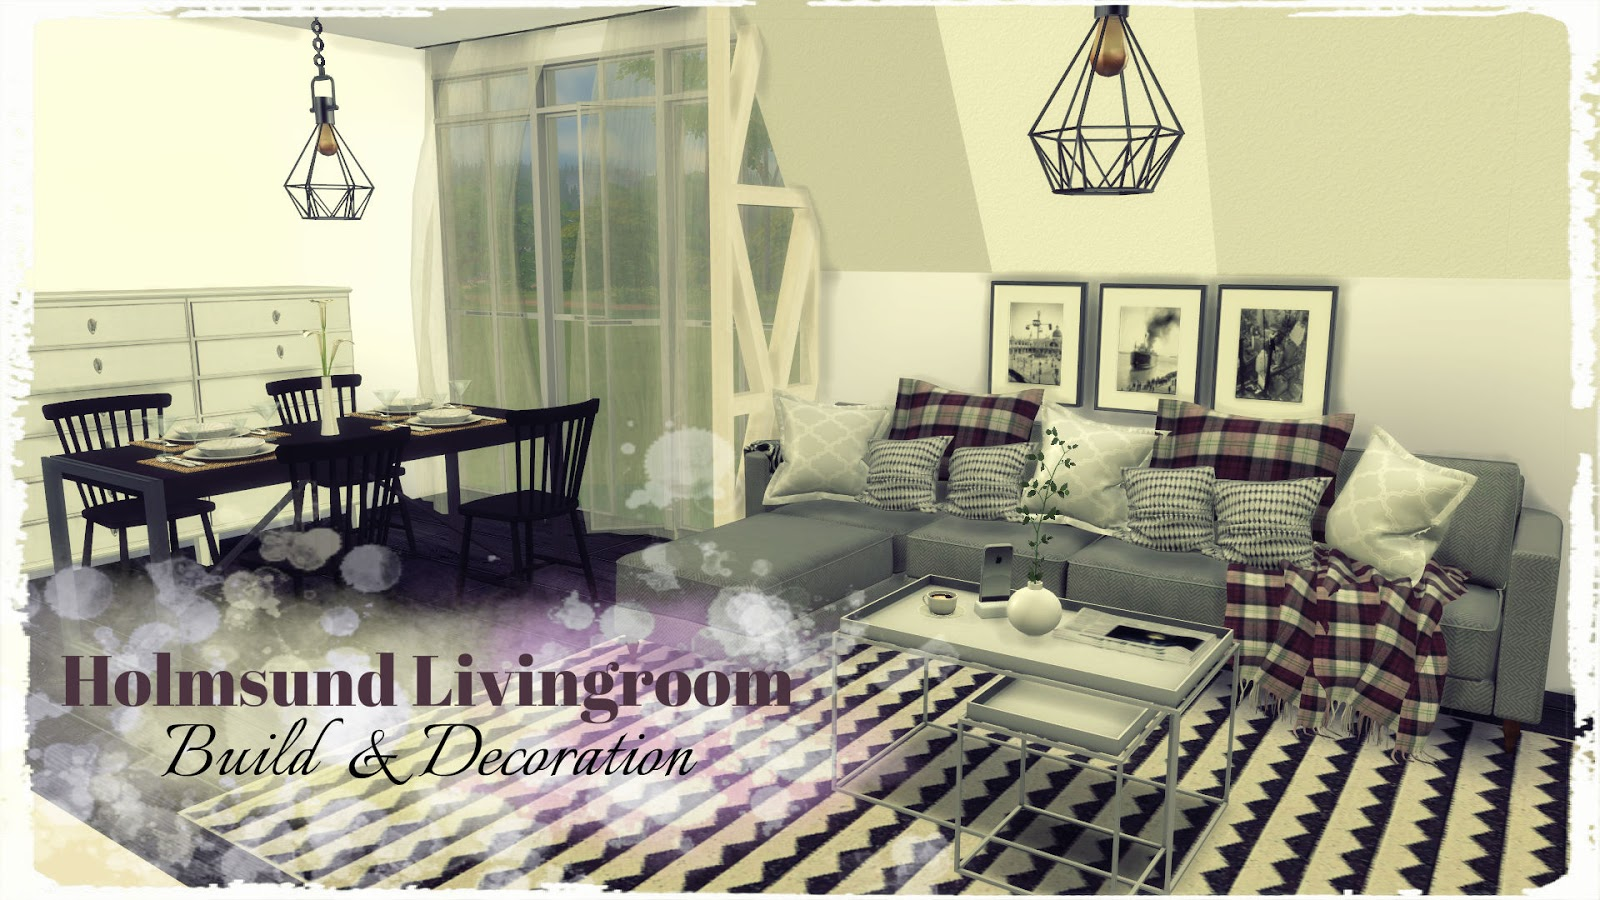 Sims 4 holmsund livingroom build decoration dinha for Sims 4 living room ideas